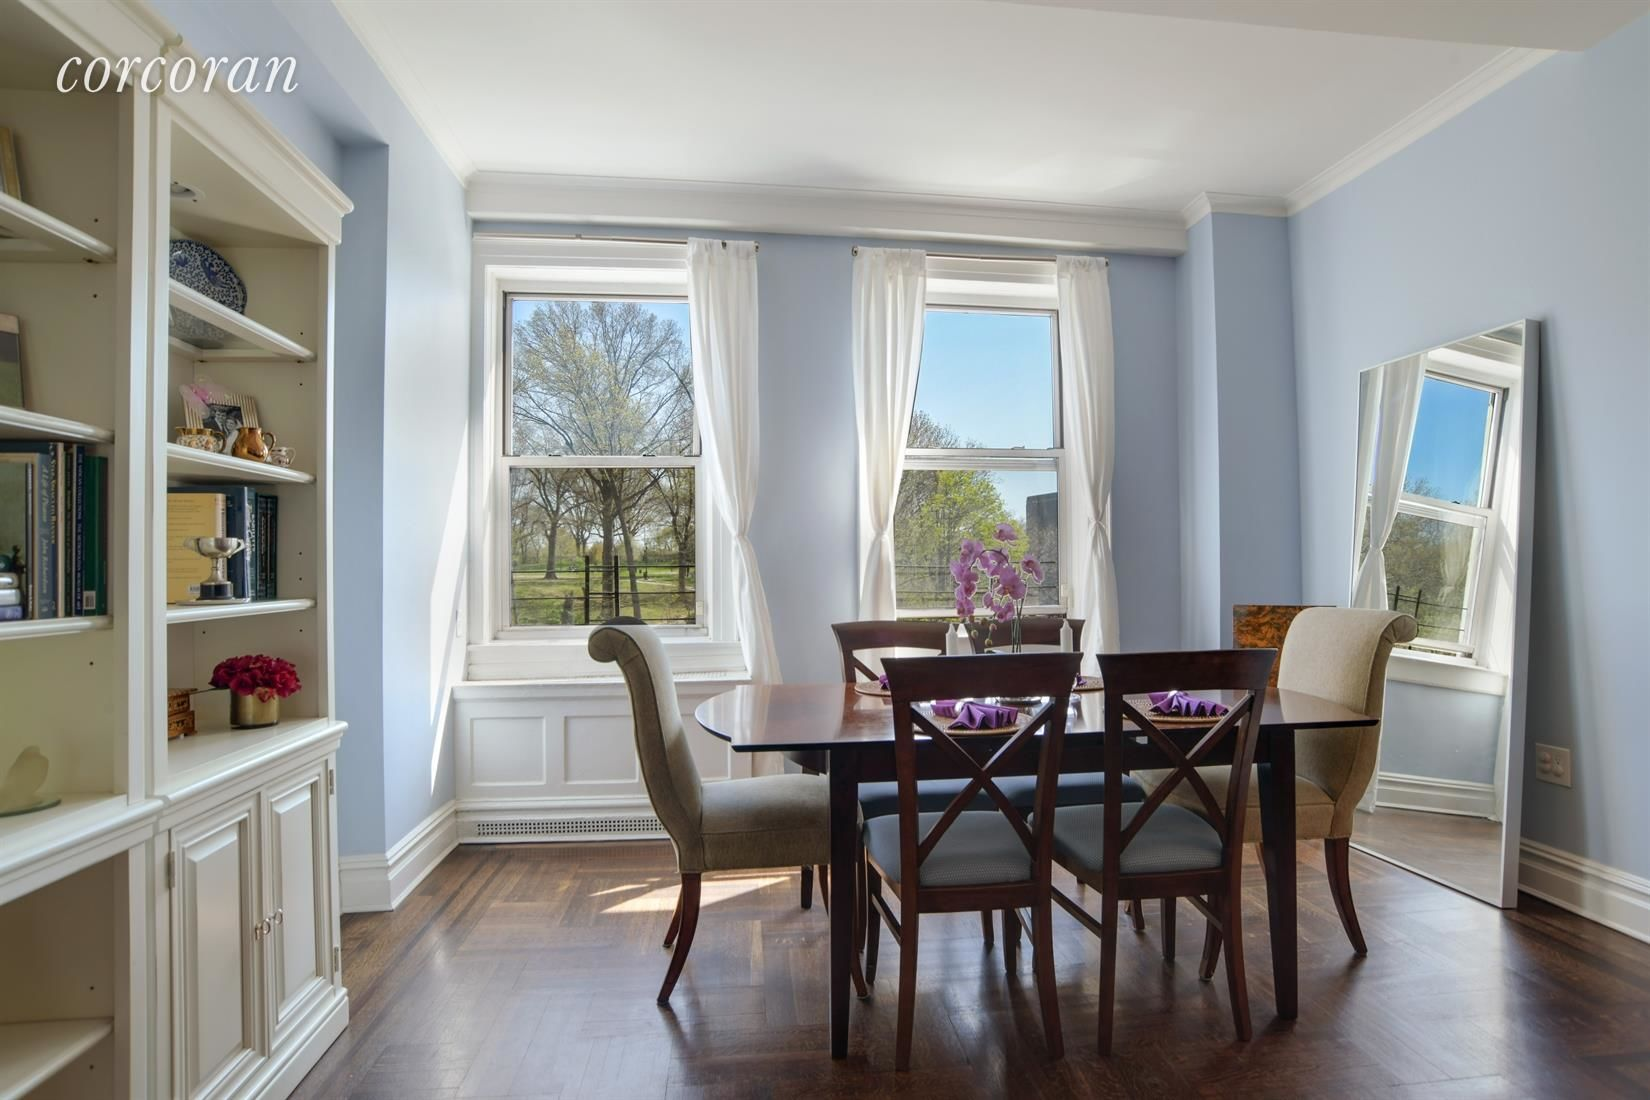 41 Eastern Pkwy, APT 4A Photo 0 - CORCORAN-5425191